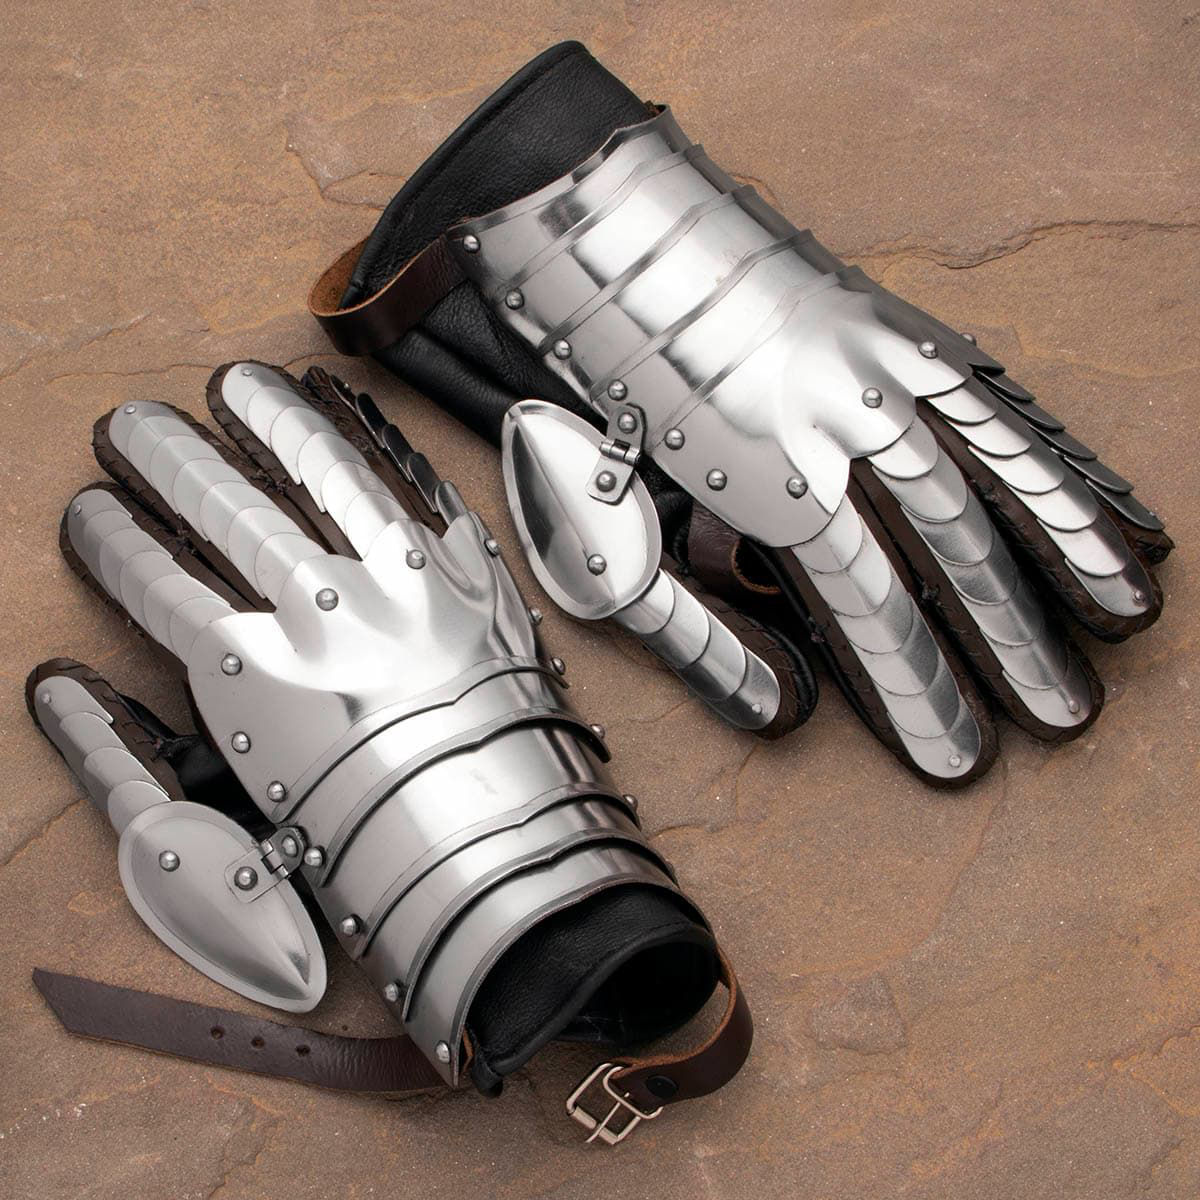 Wearable Articulated Scale Gauntlets crafted from plates of riveted 18 gauge steel with an integrated suede leather glove